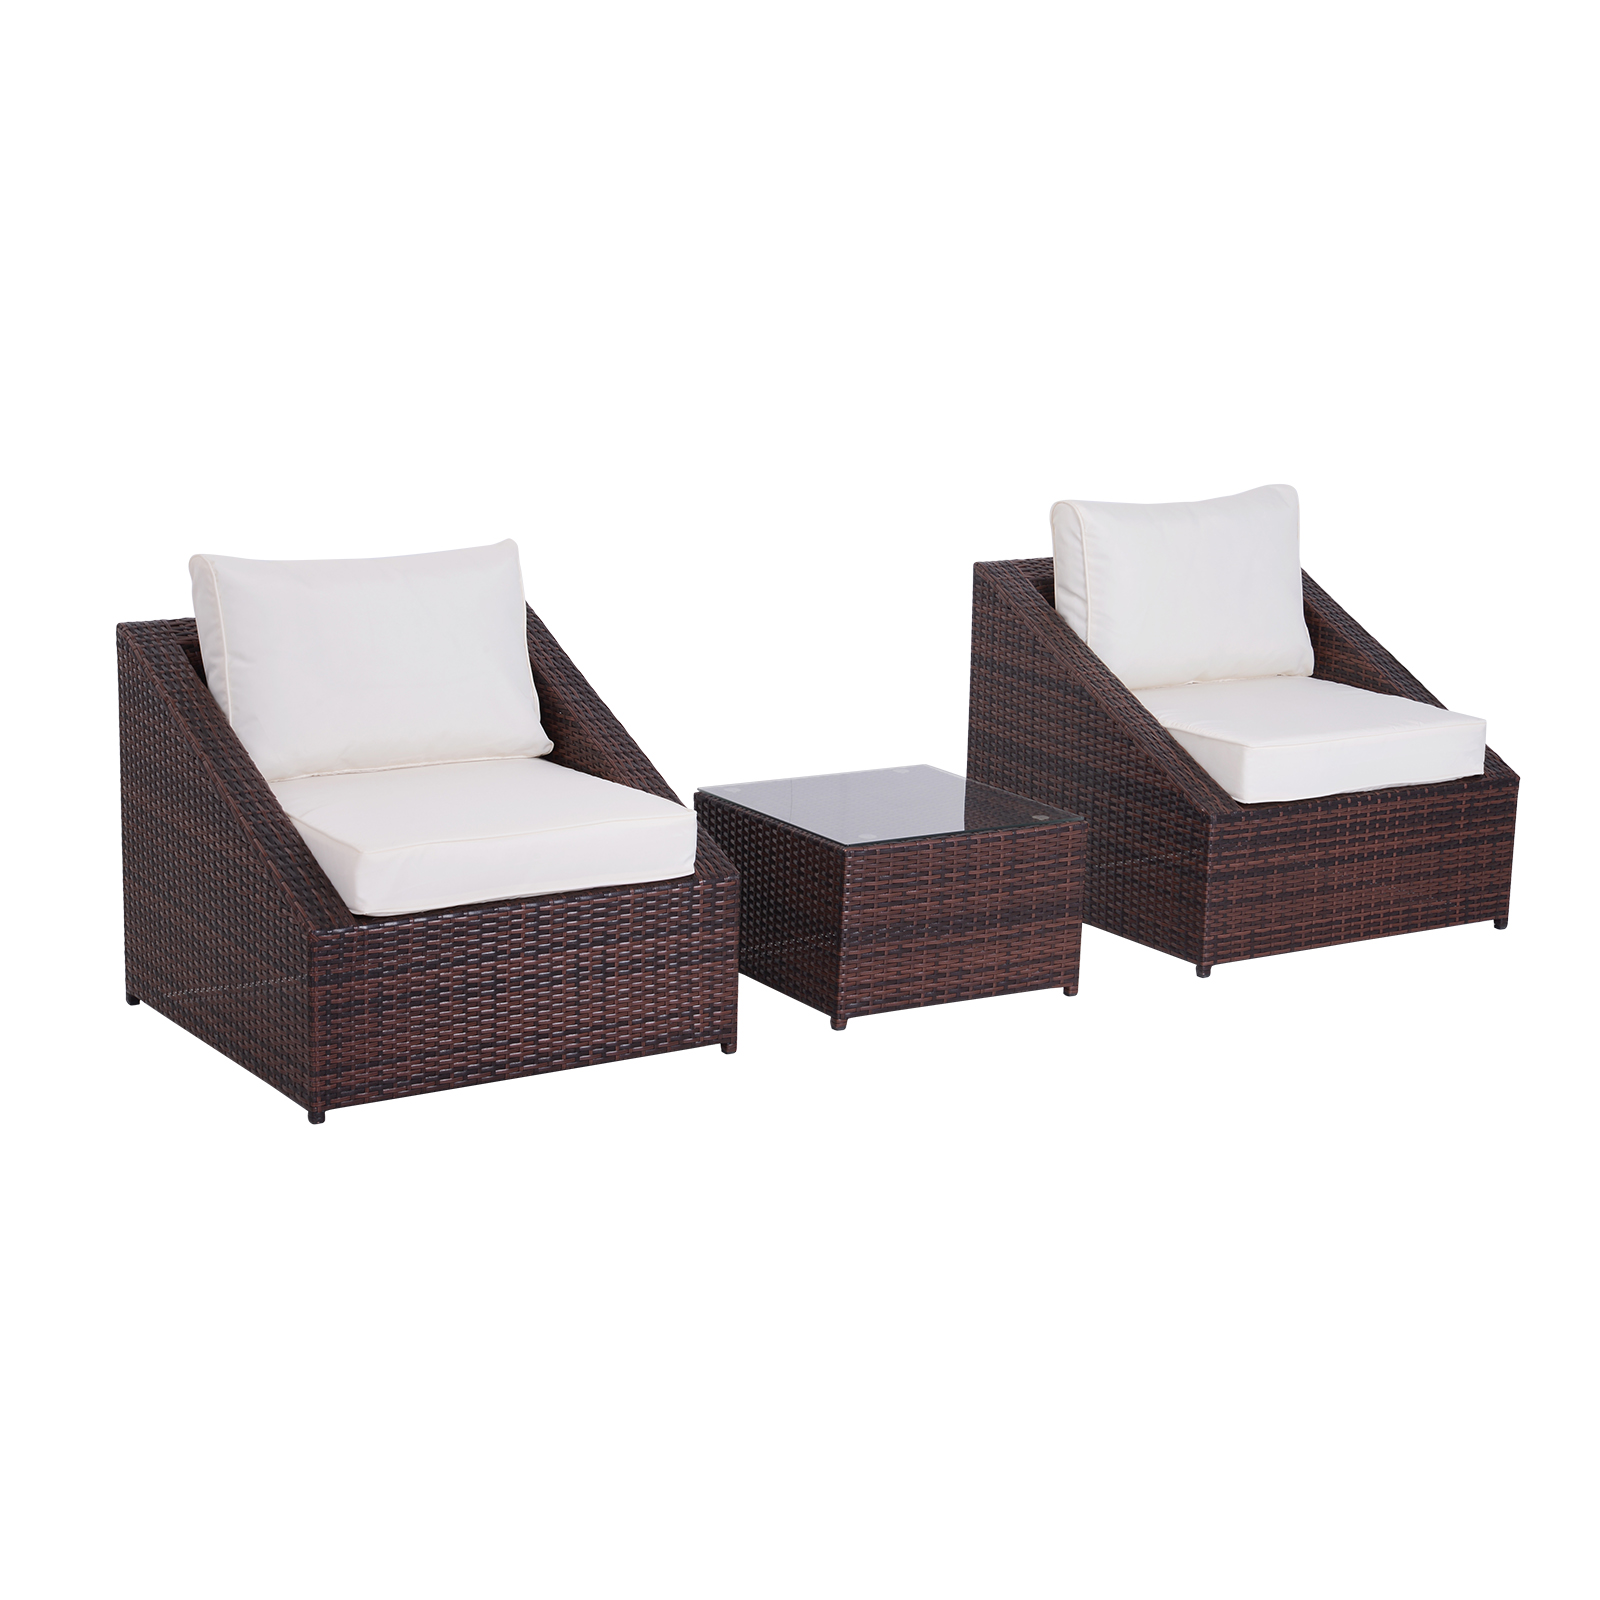 Outsunny Furniture Set With Coffee Table 2 Arm Chairs With Cushions Garden PE Rattan Brown